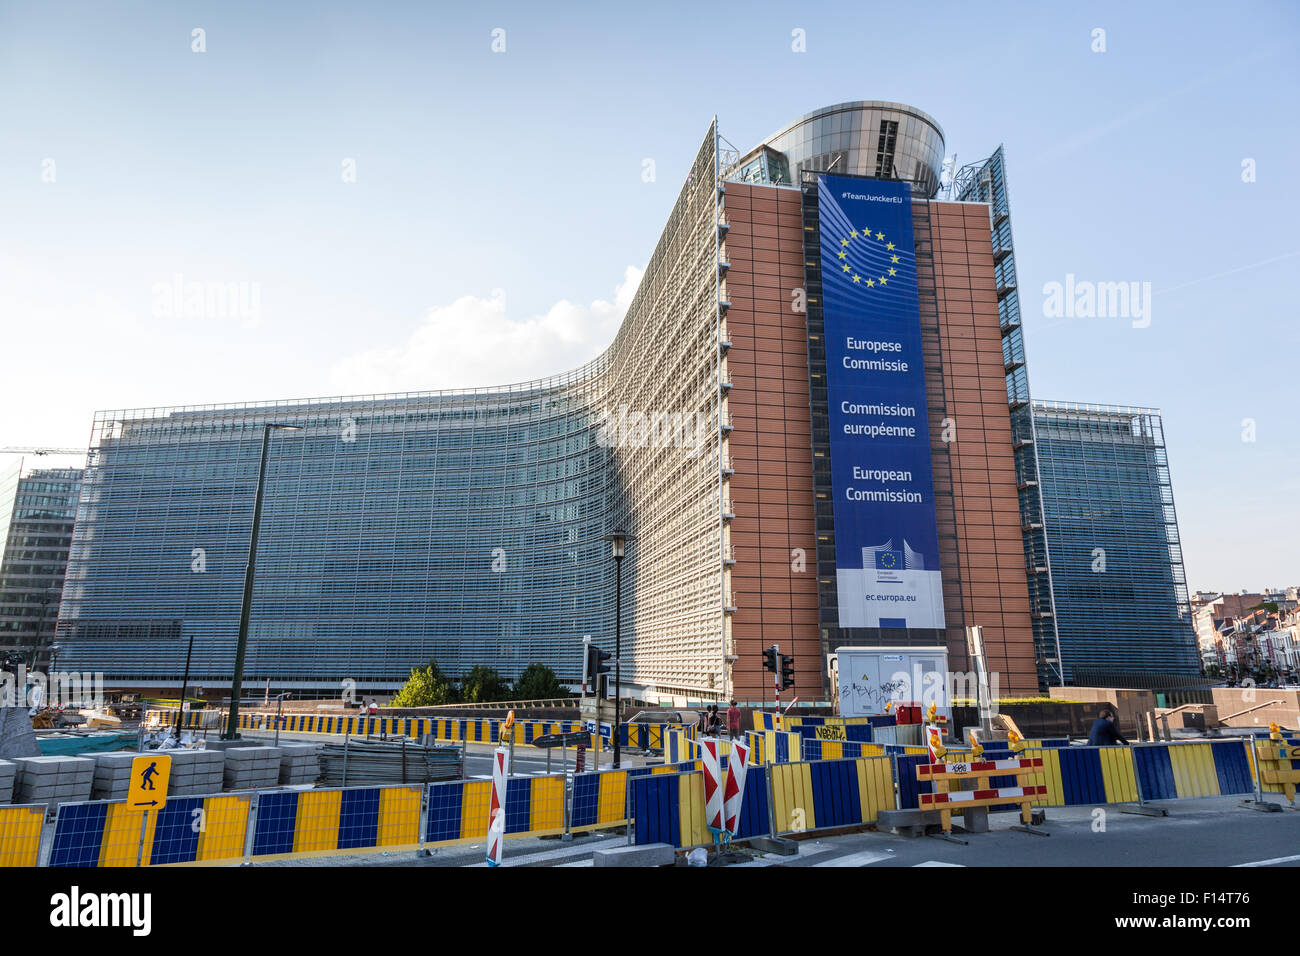 Le Berlaymont -  the European Comission building in Brussels, Belgium - Stock Image